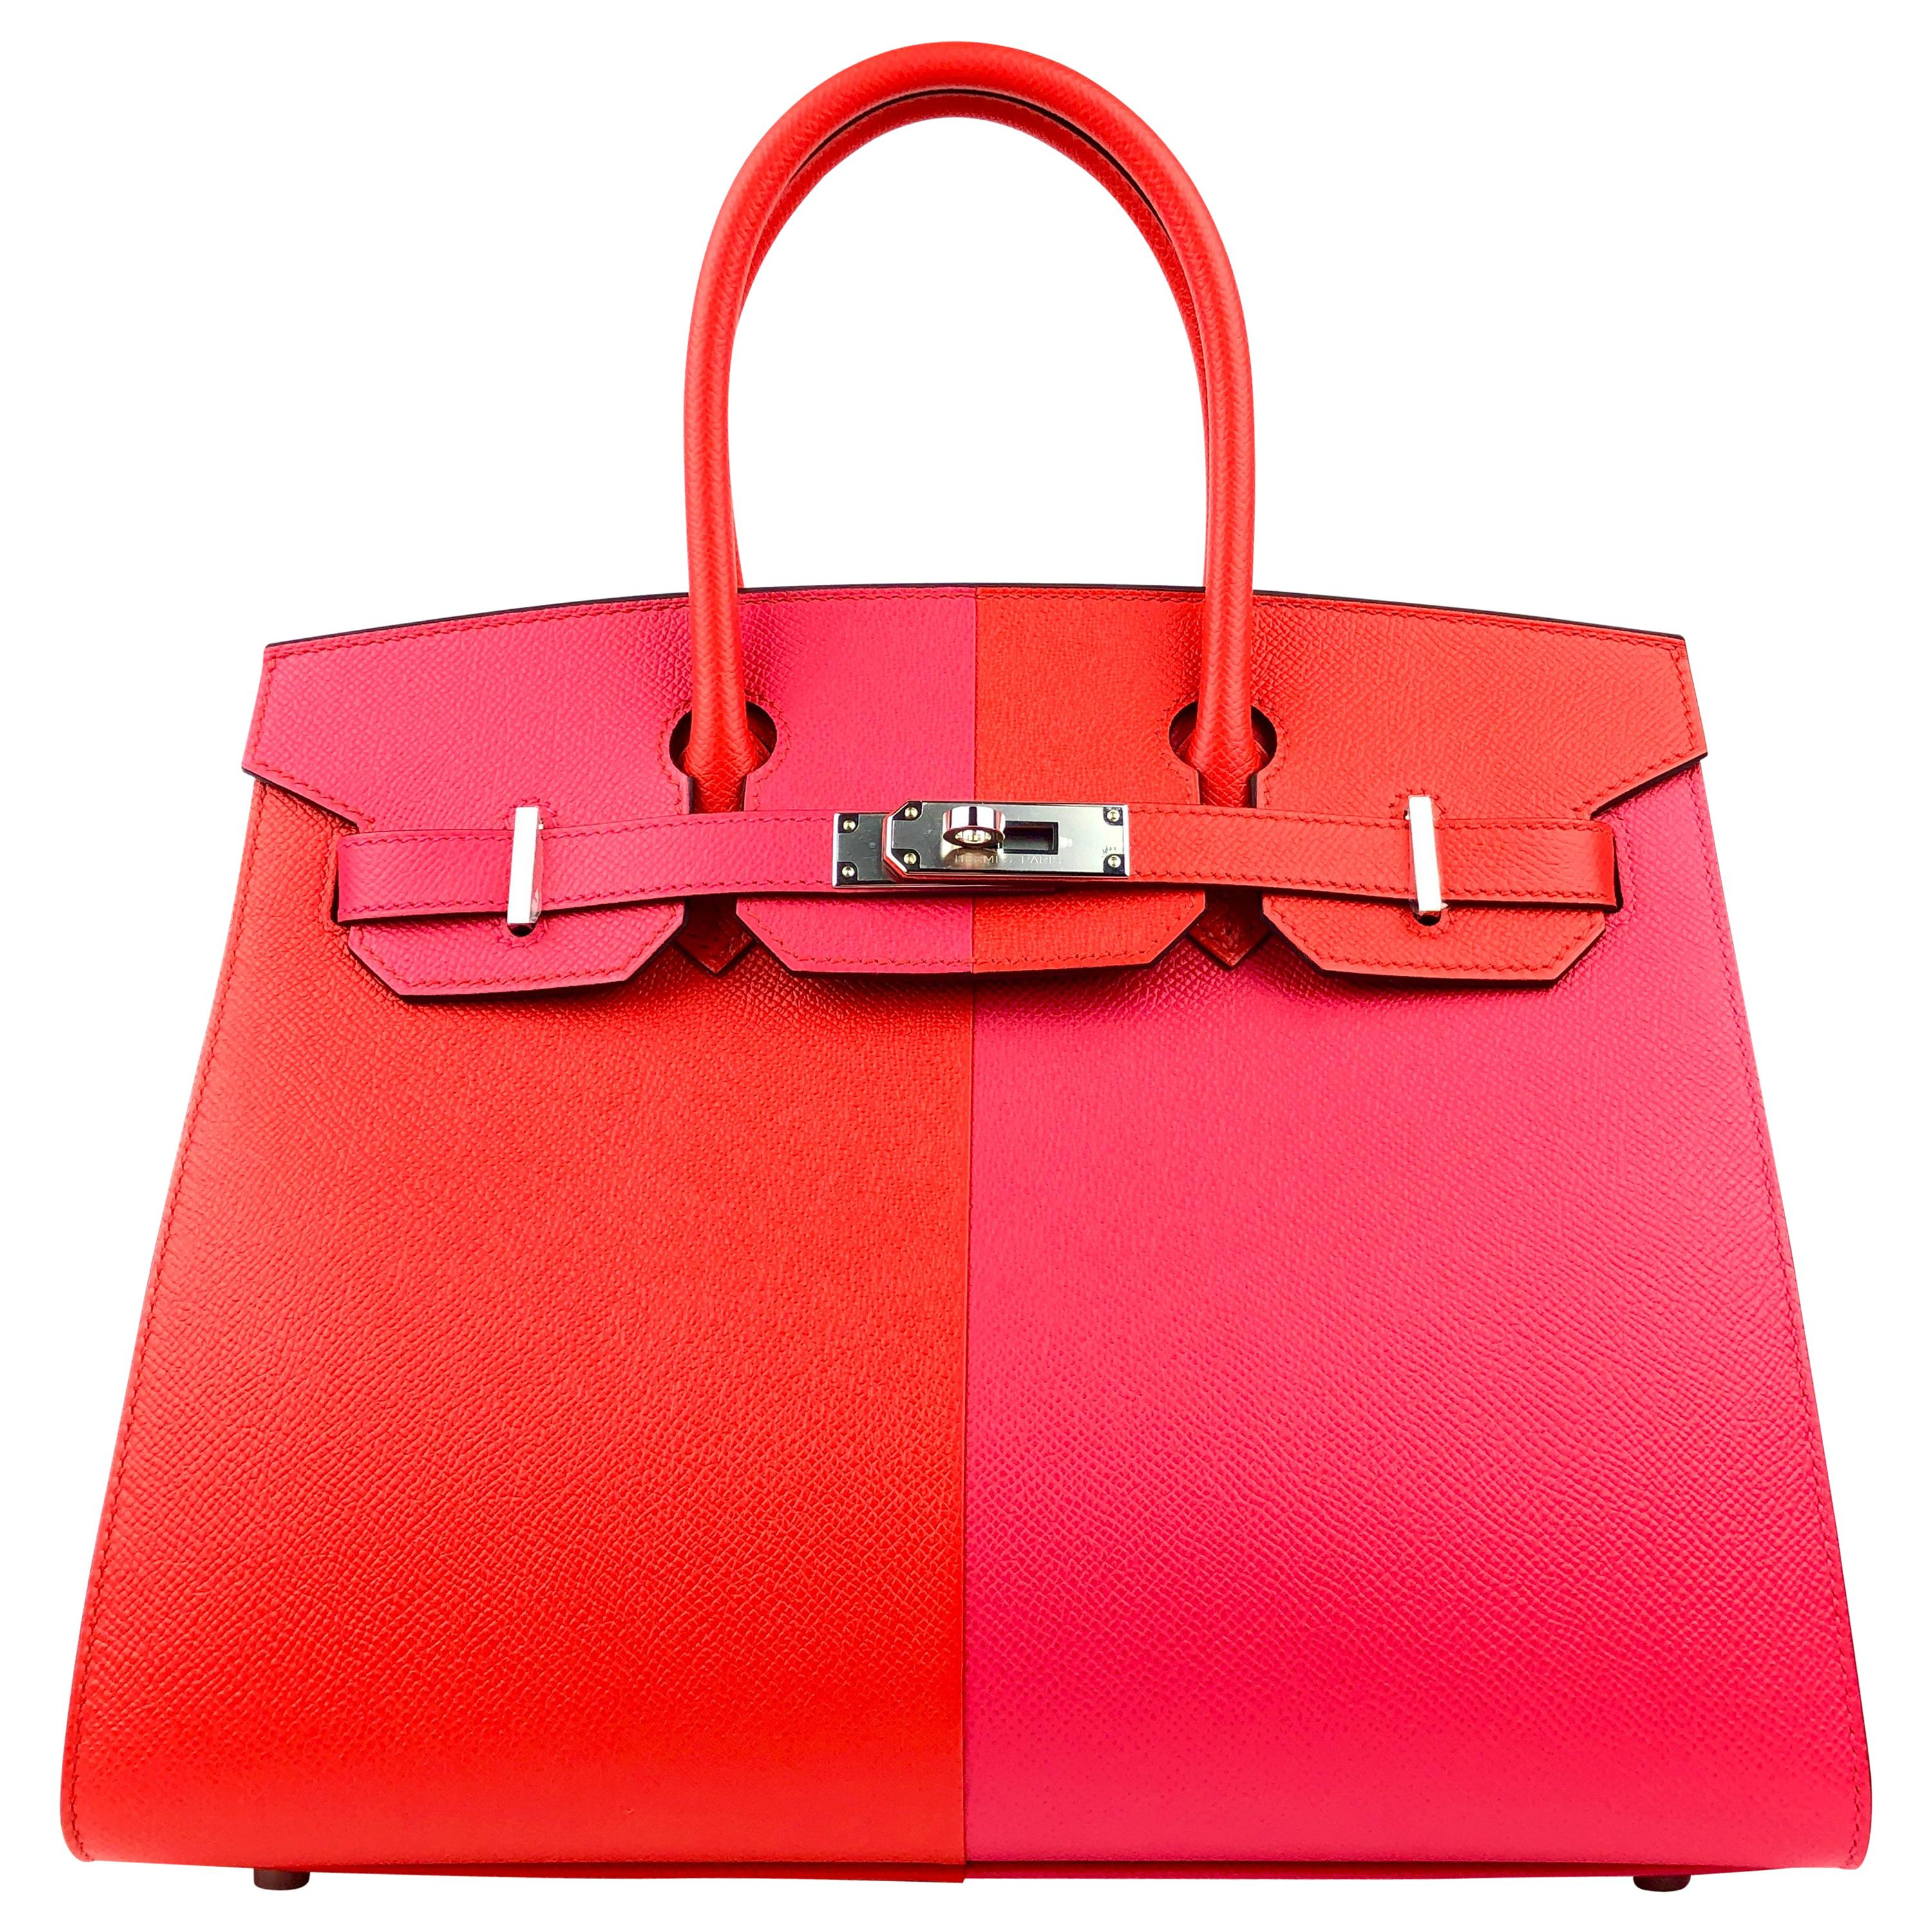 Hermès Pink and Red Epsom Special EditionSellier 30 cm Birkin